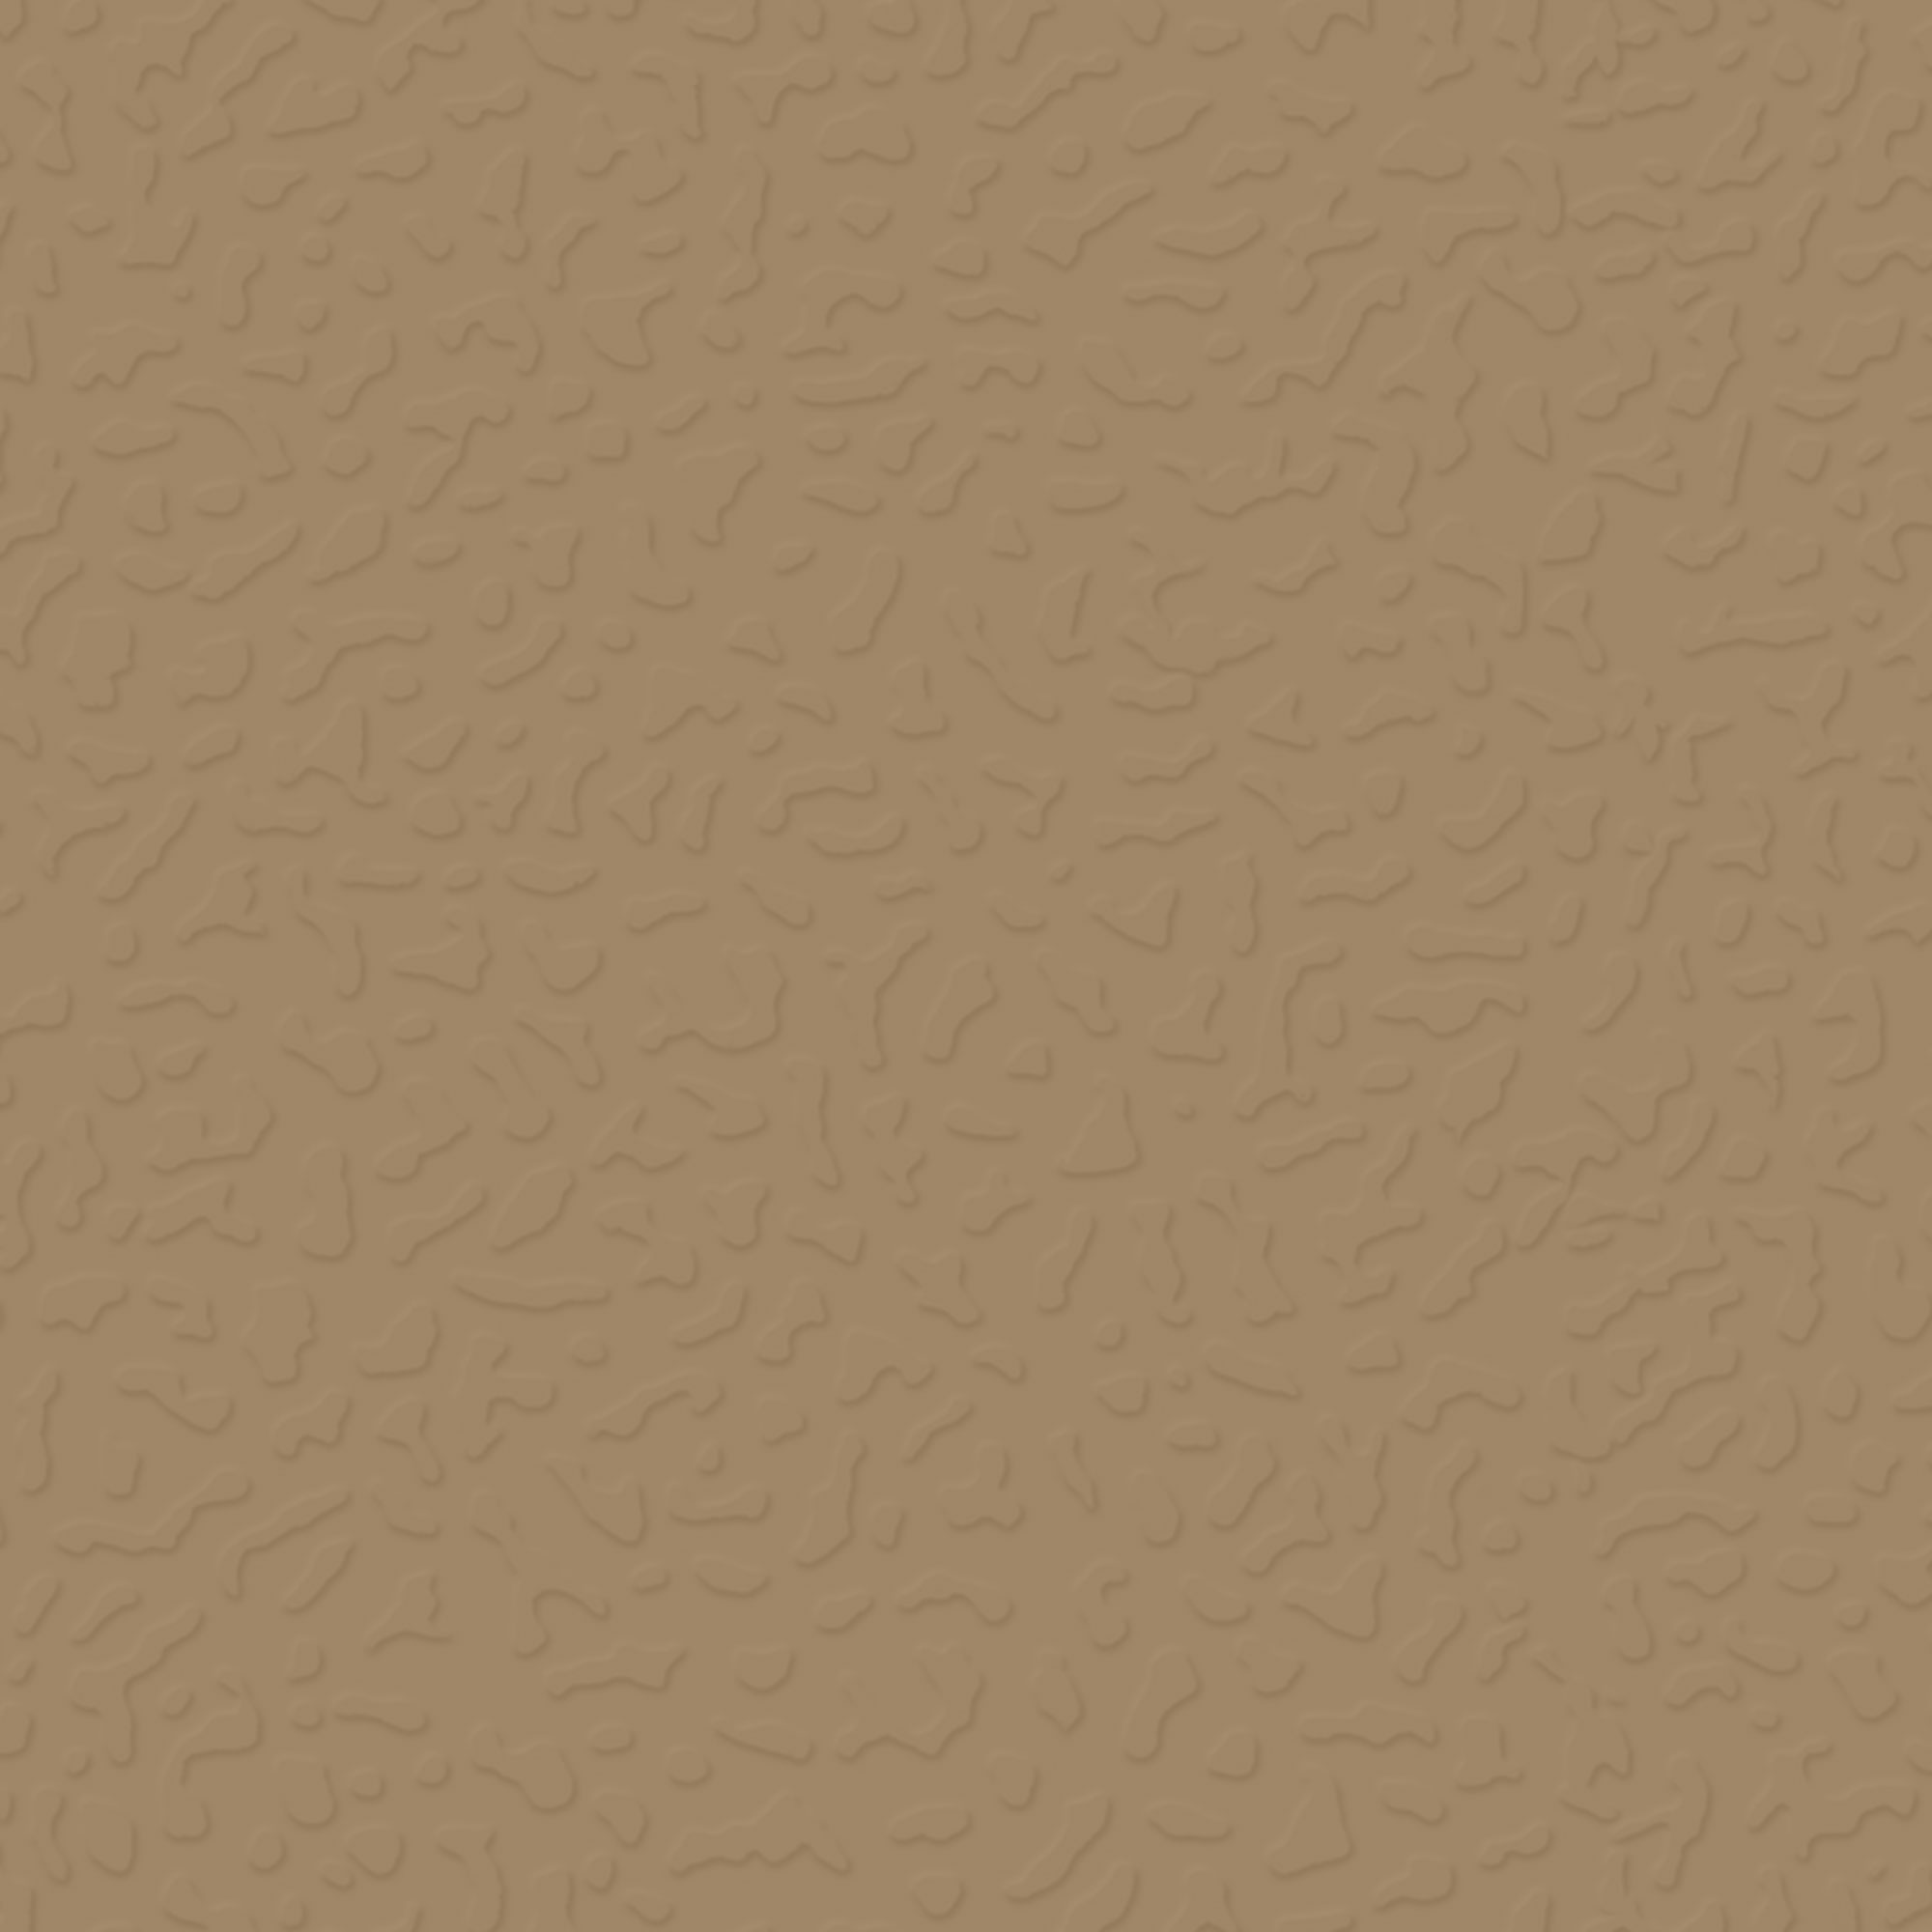 Roppe Rubber Tile 900 - Textured Design (993) Sahara LB996631